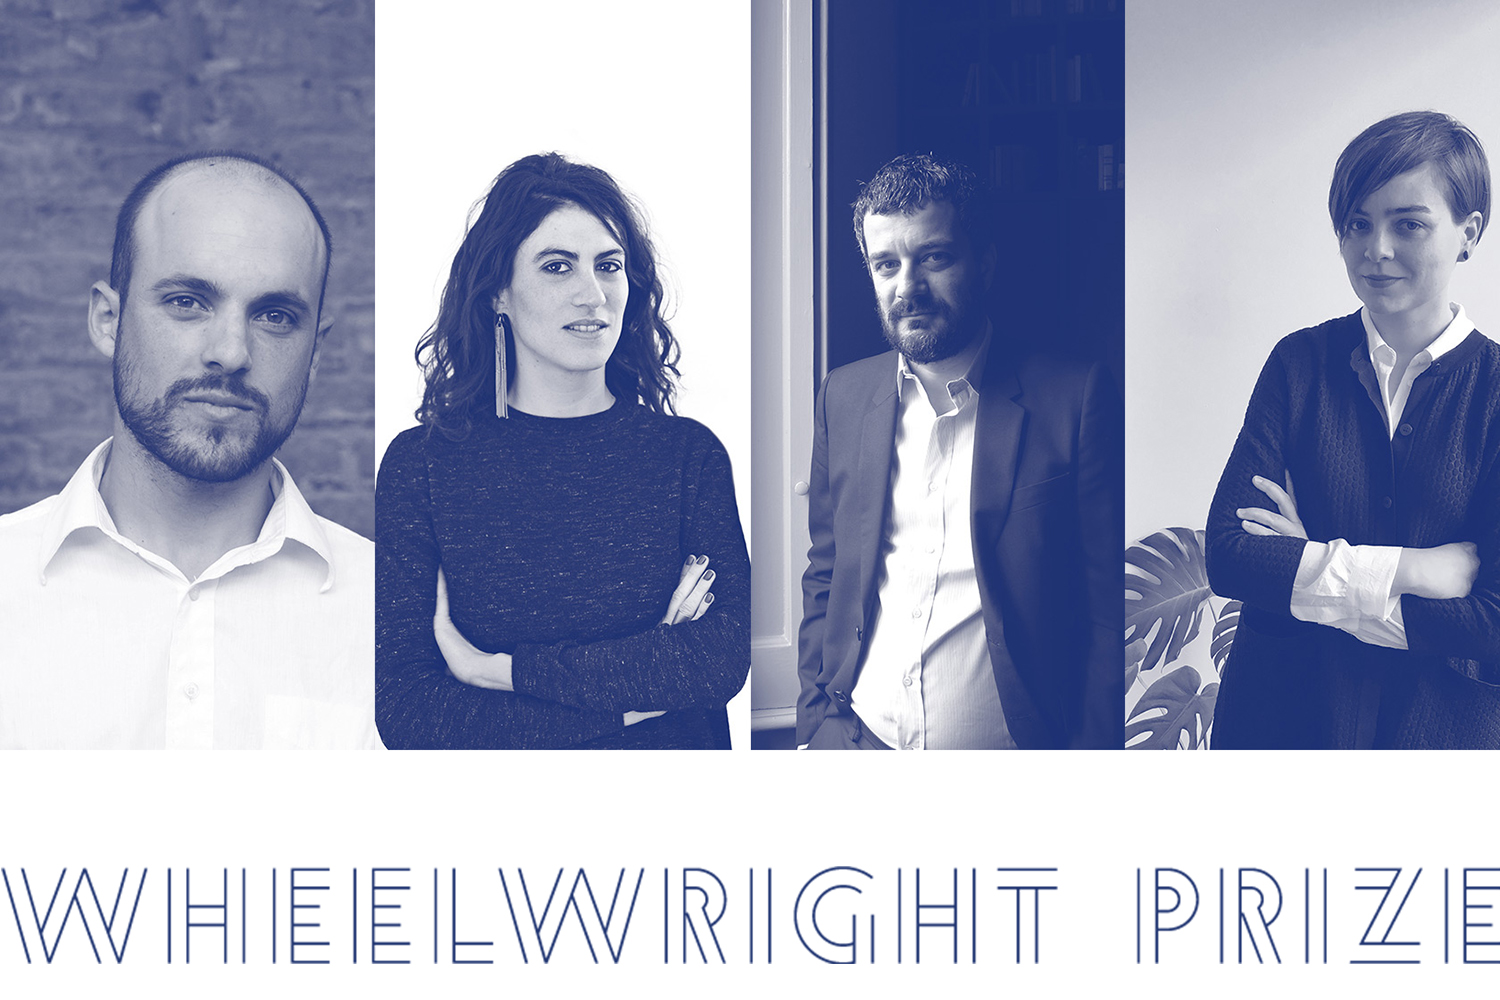 Harvard GSD Wheelwright Prize 2018 – $100,000 Fellowship for early-career Architects